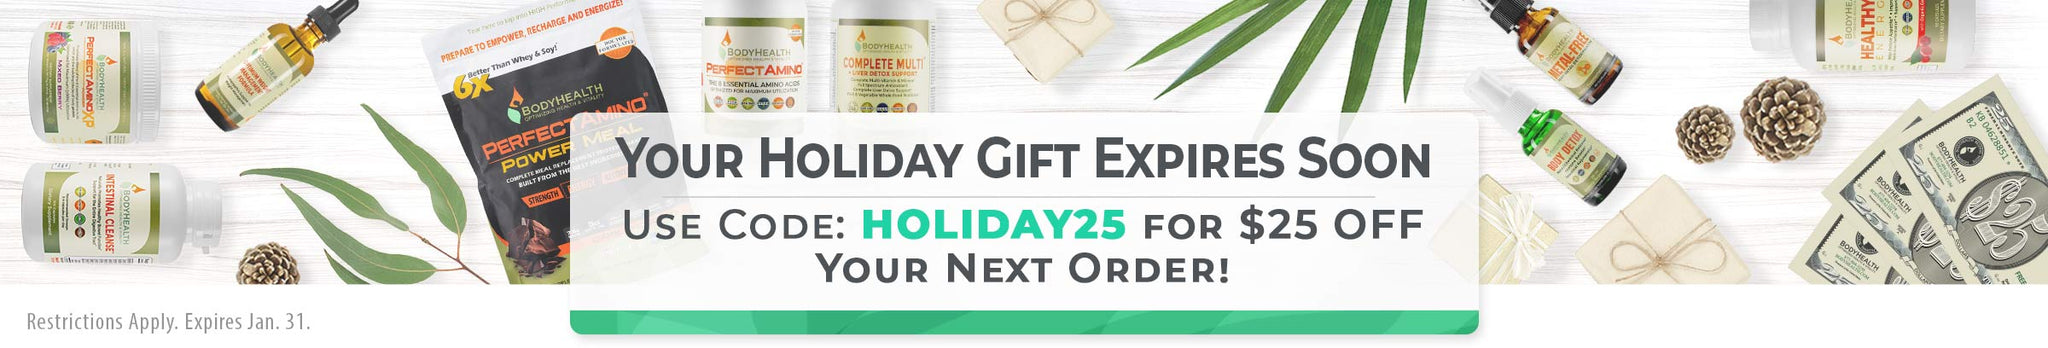 Have you used your holiday gift card yet? Save $25 off your next order with code: HOLIDAY25